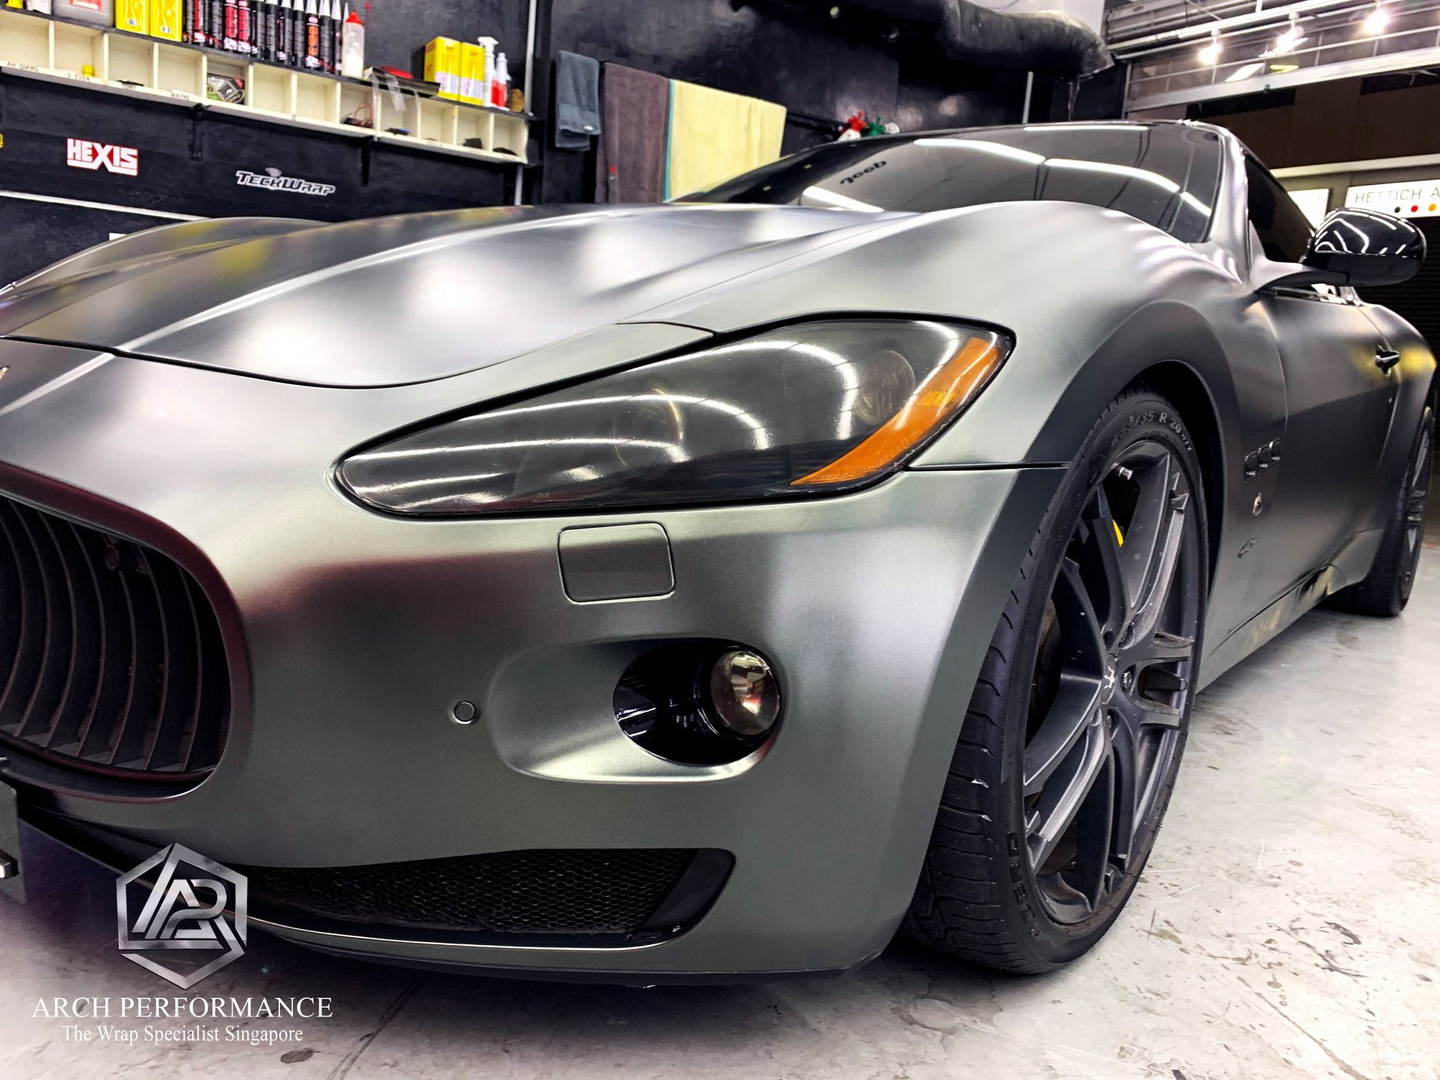 Maserati Matte Metallic Anthracite Grey